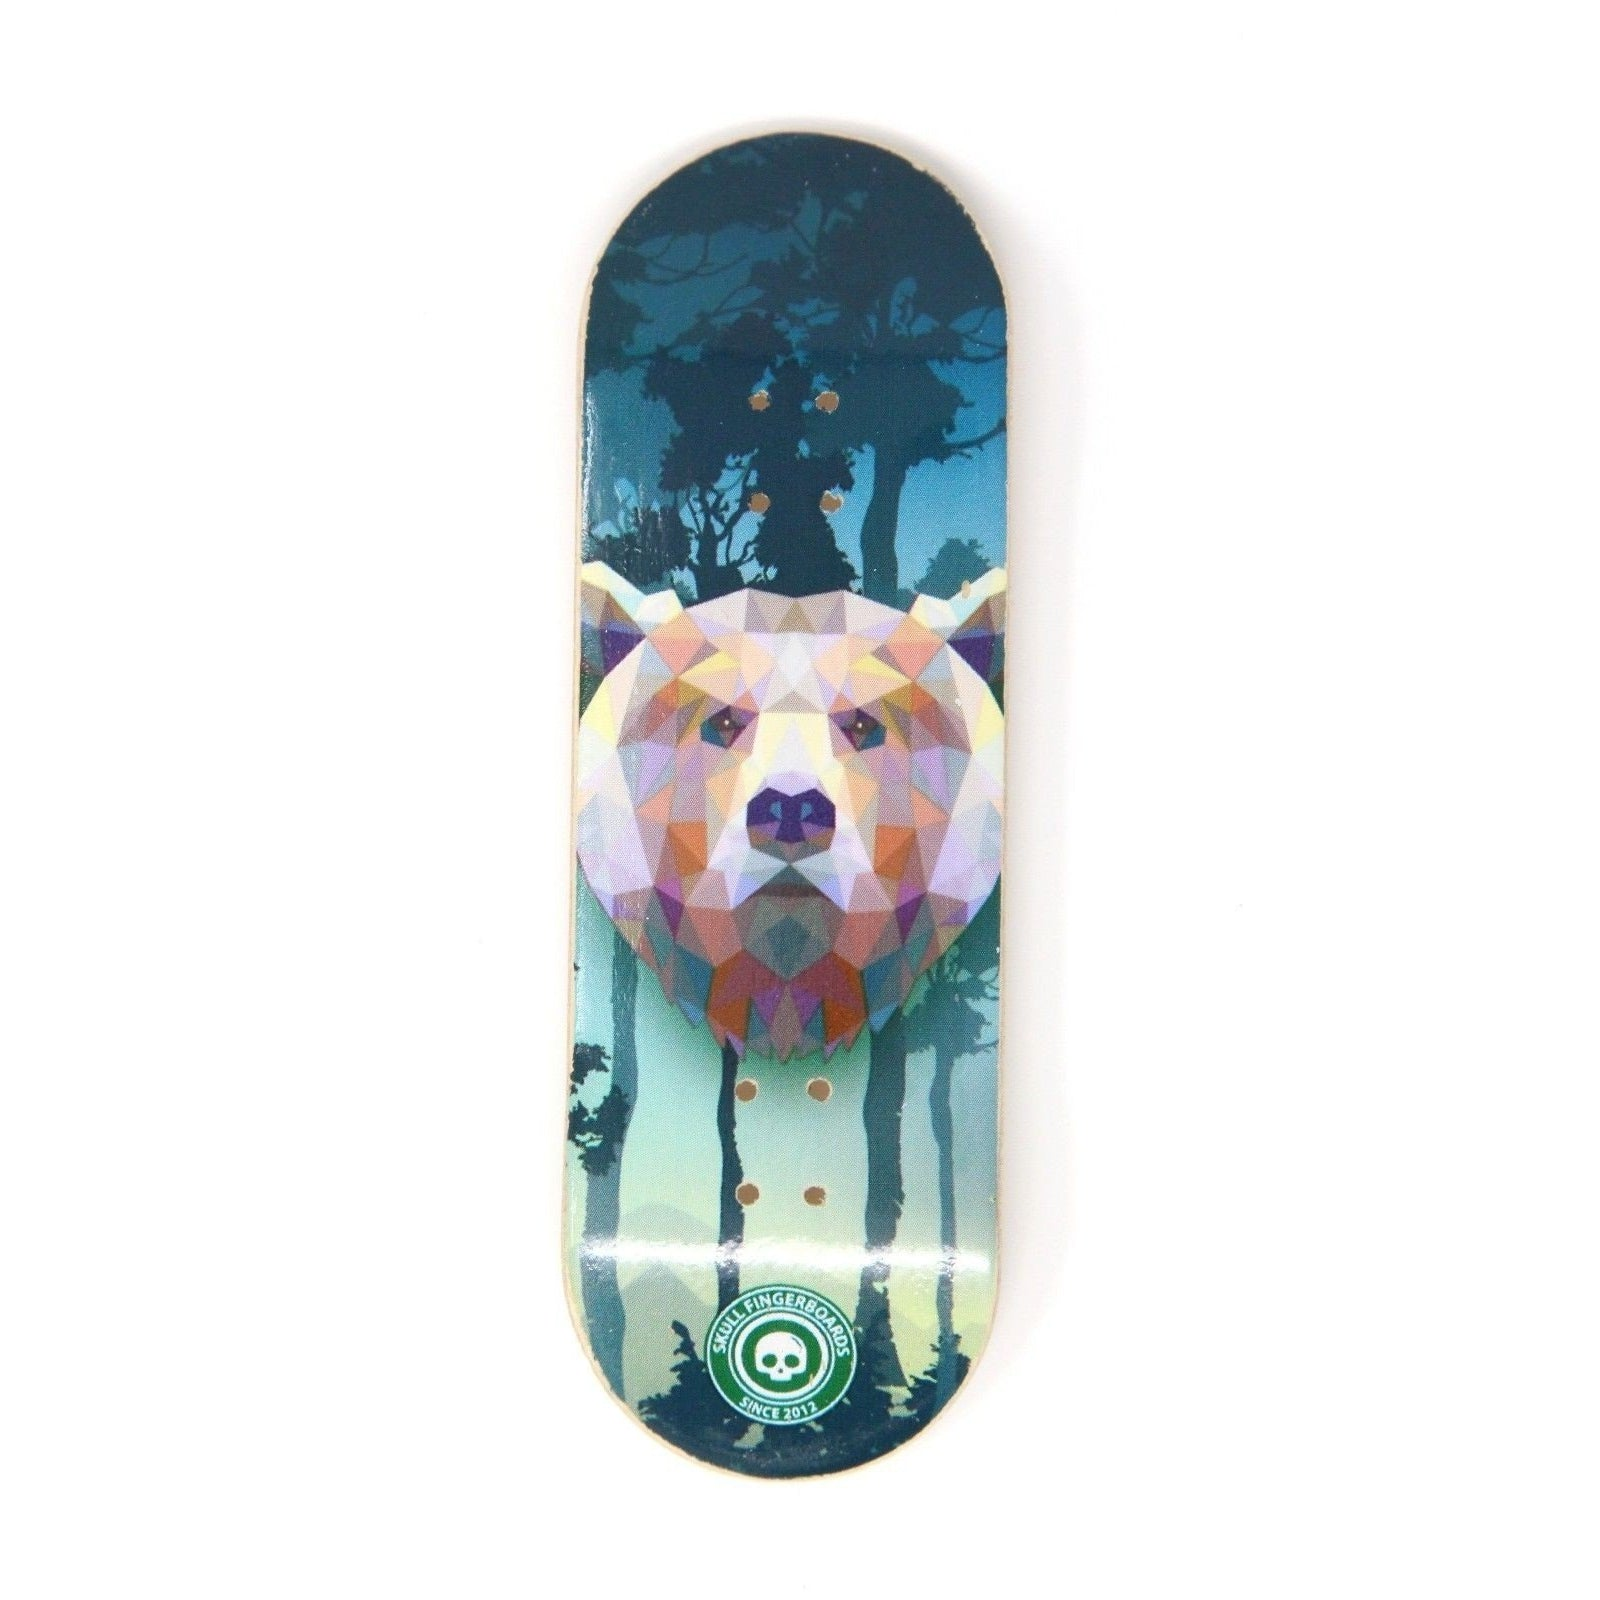 Skull Deck - The Grizzly Bear 32mm